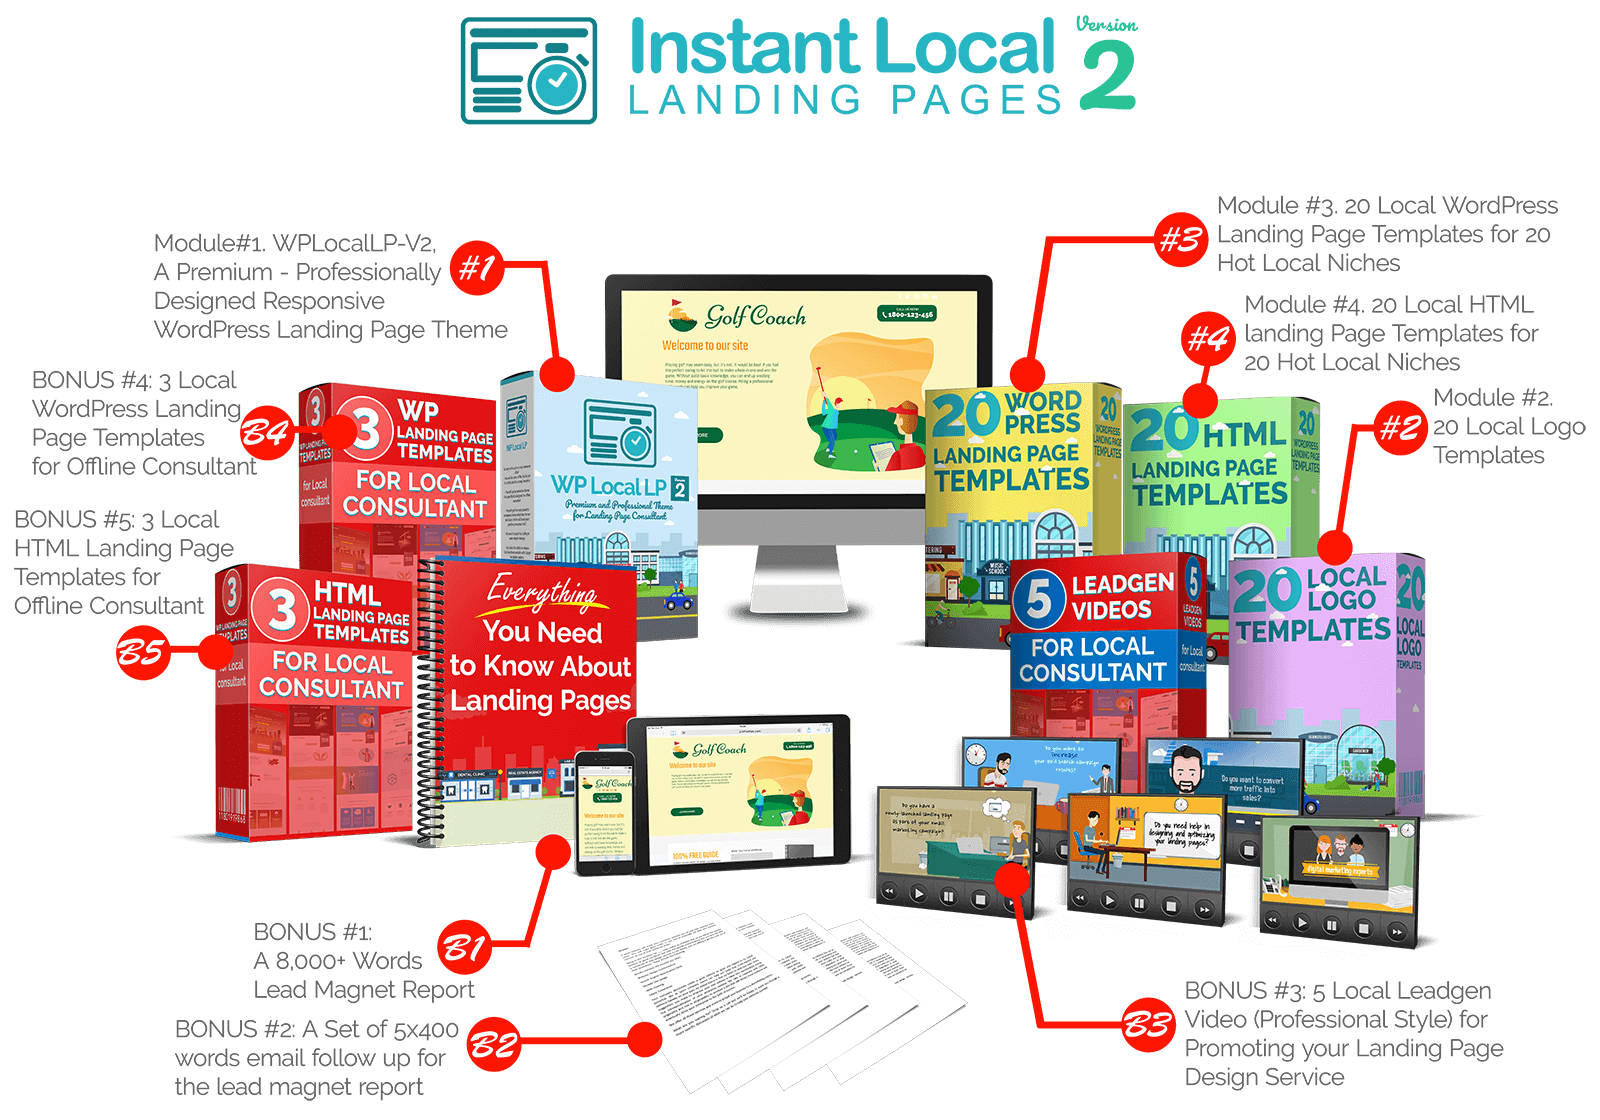 Instant-Local-Landing-Pages-2-Review-1